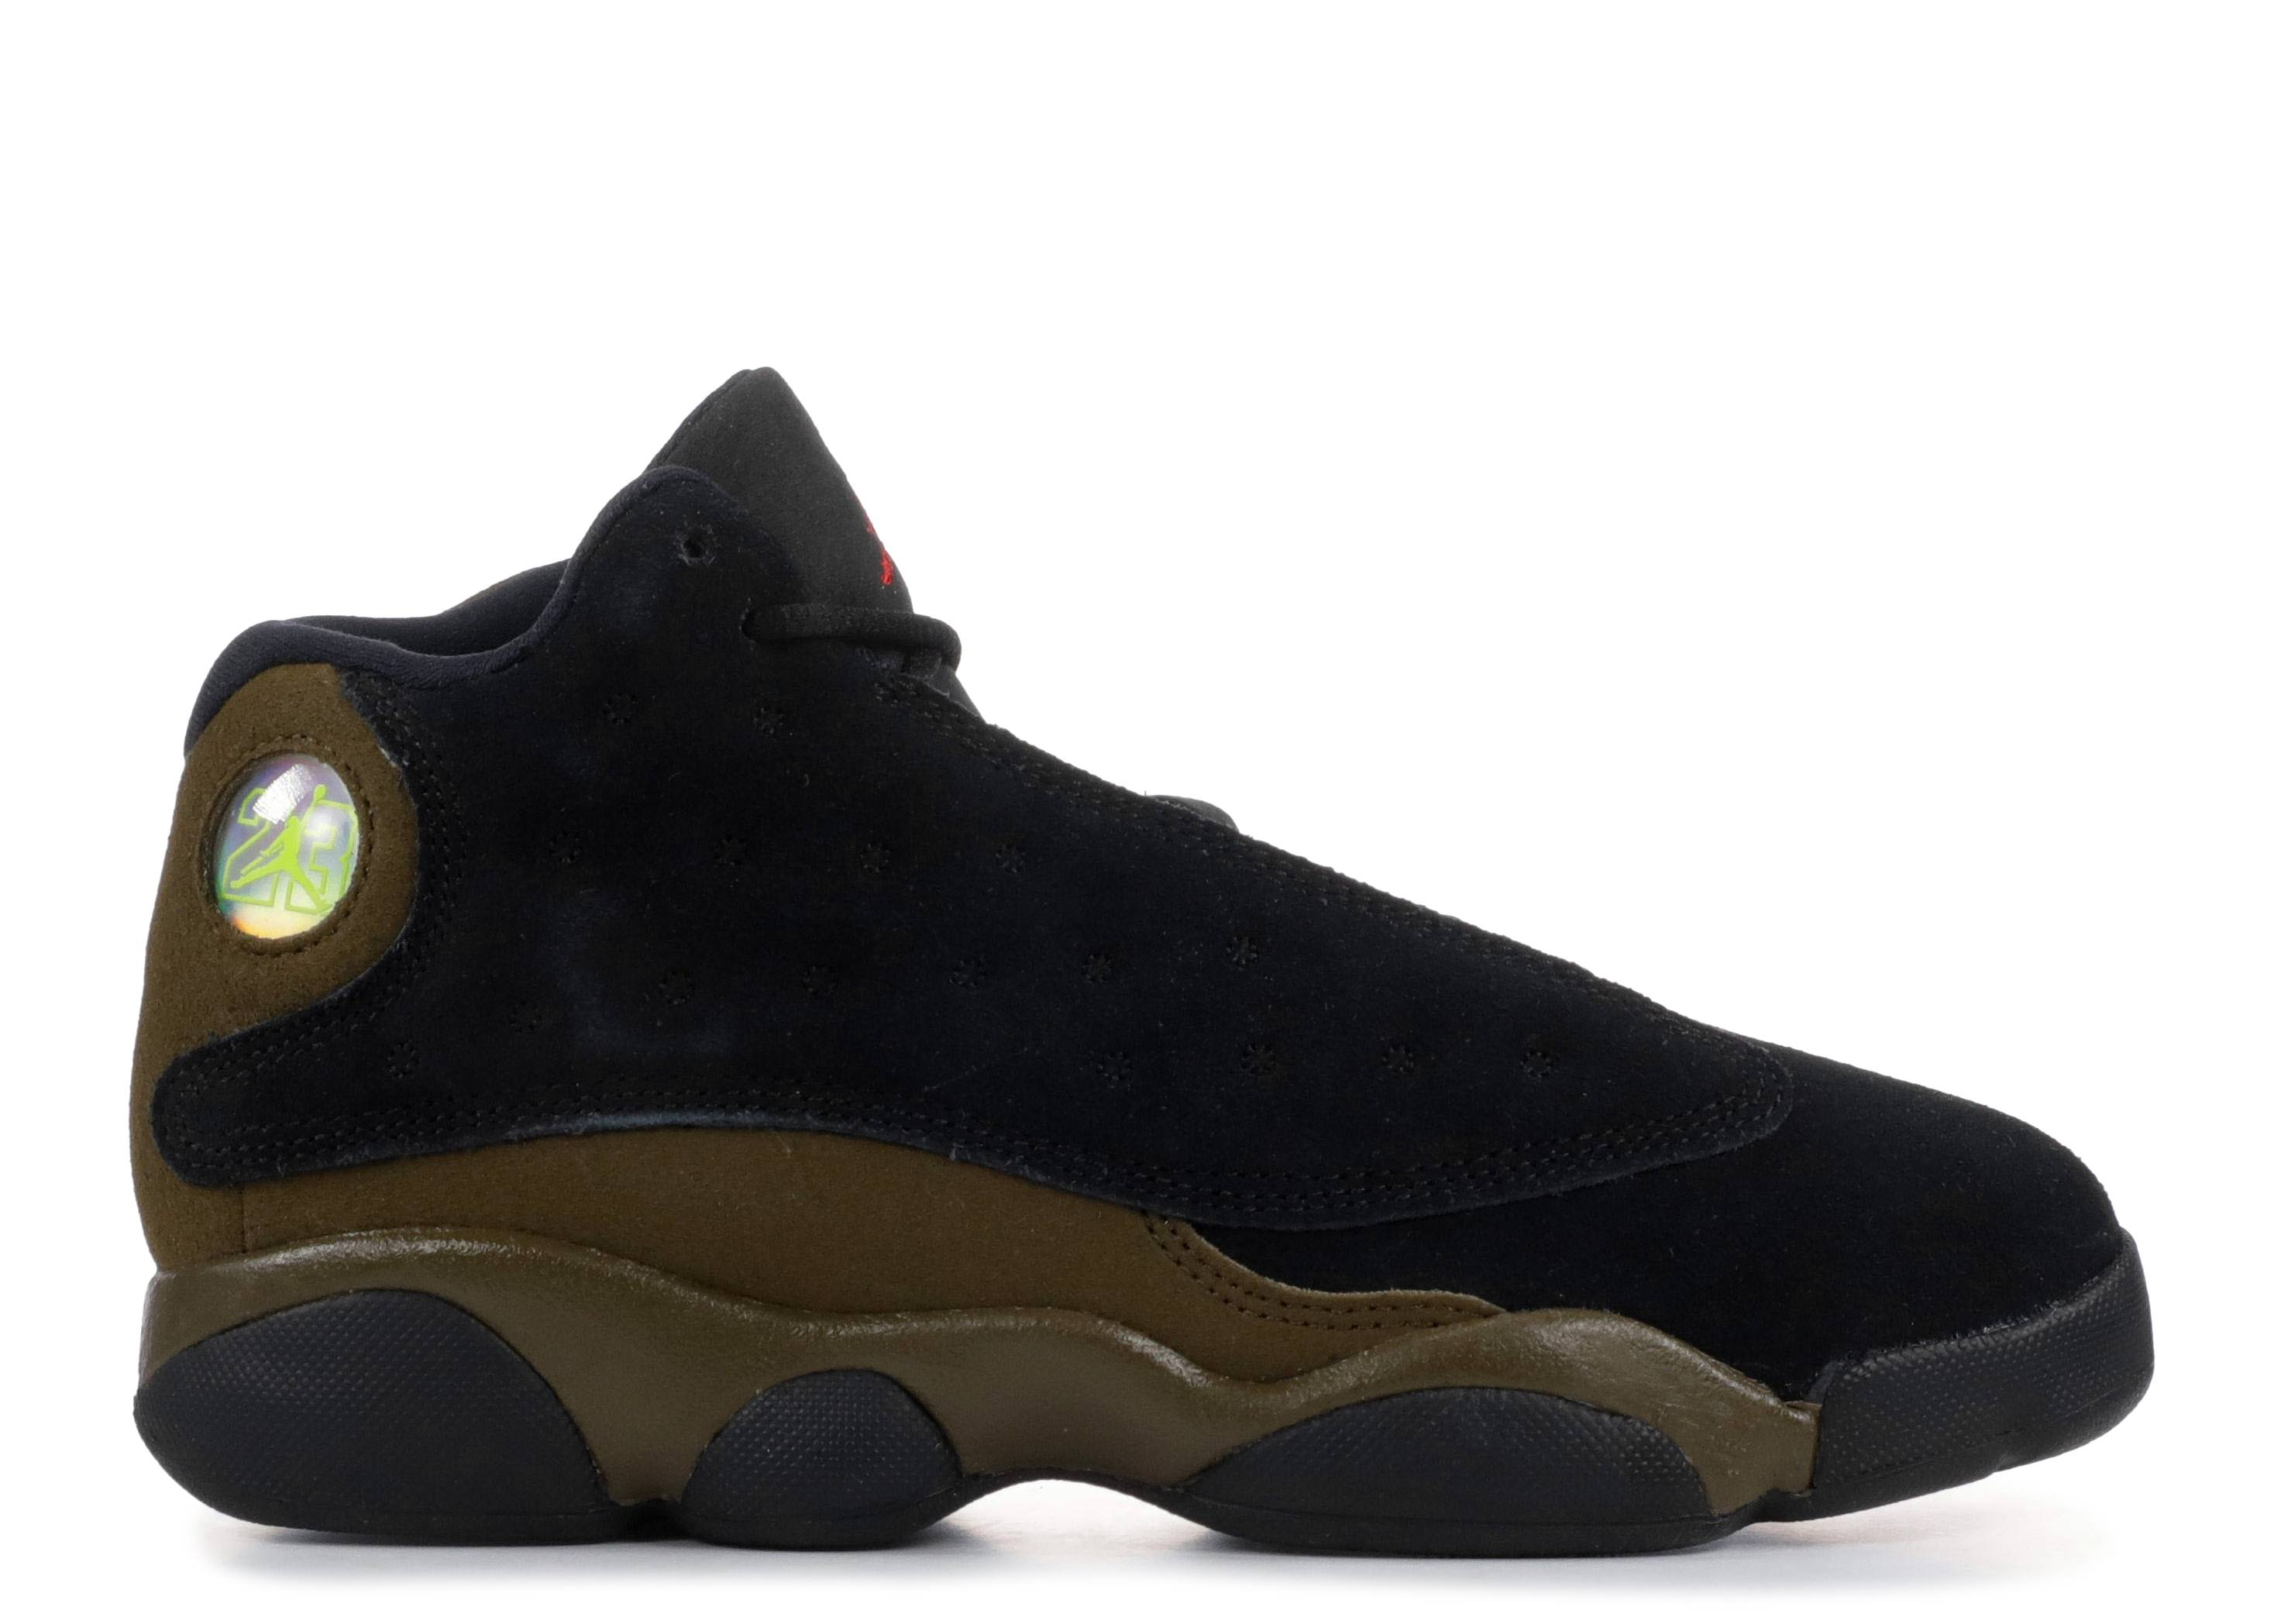 "Jordan 13 Retro PS 'Black Olive' ""Black Olive"""